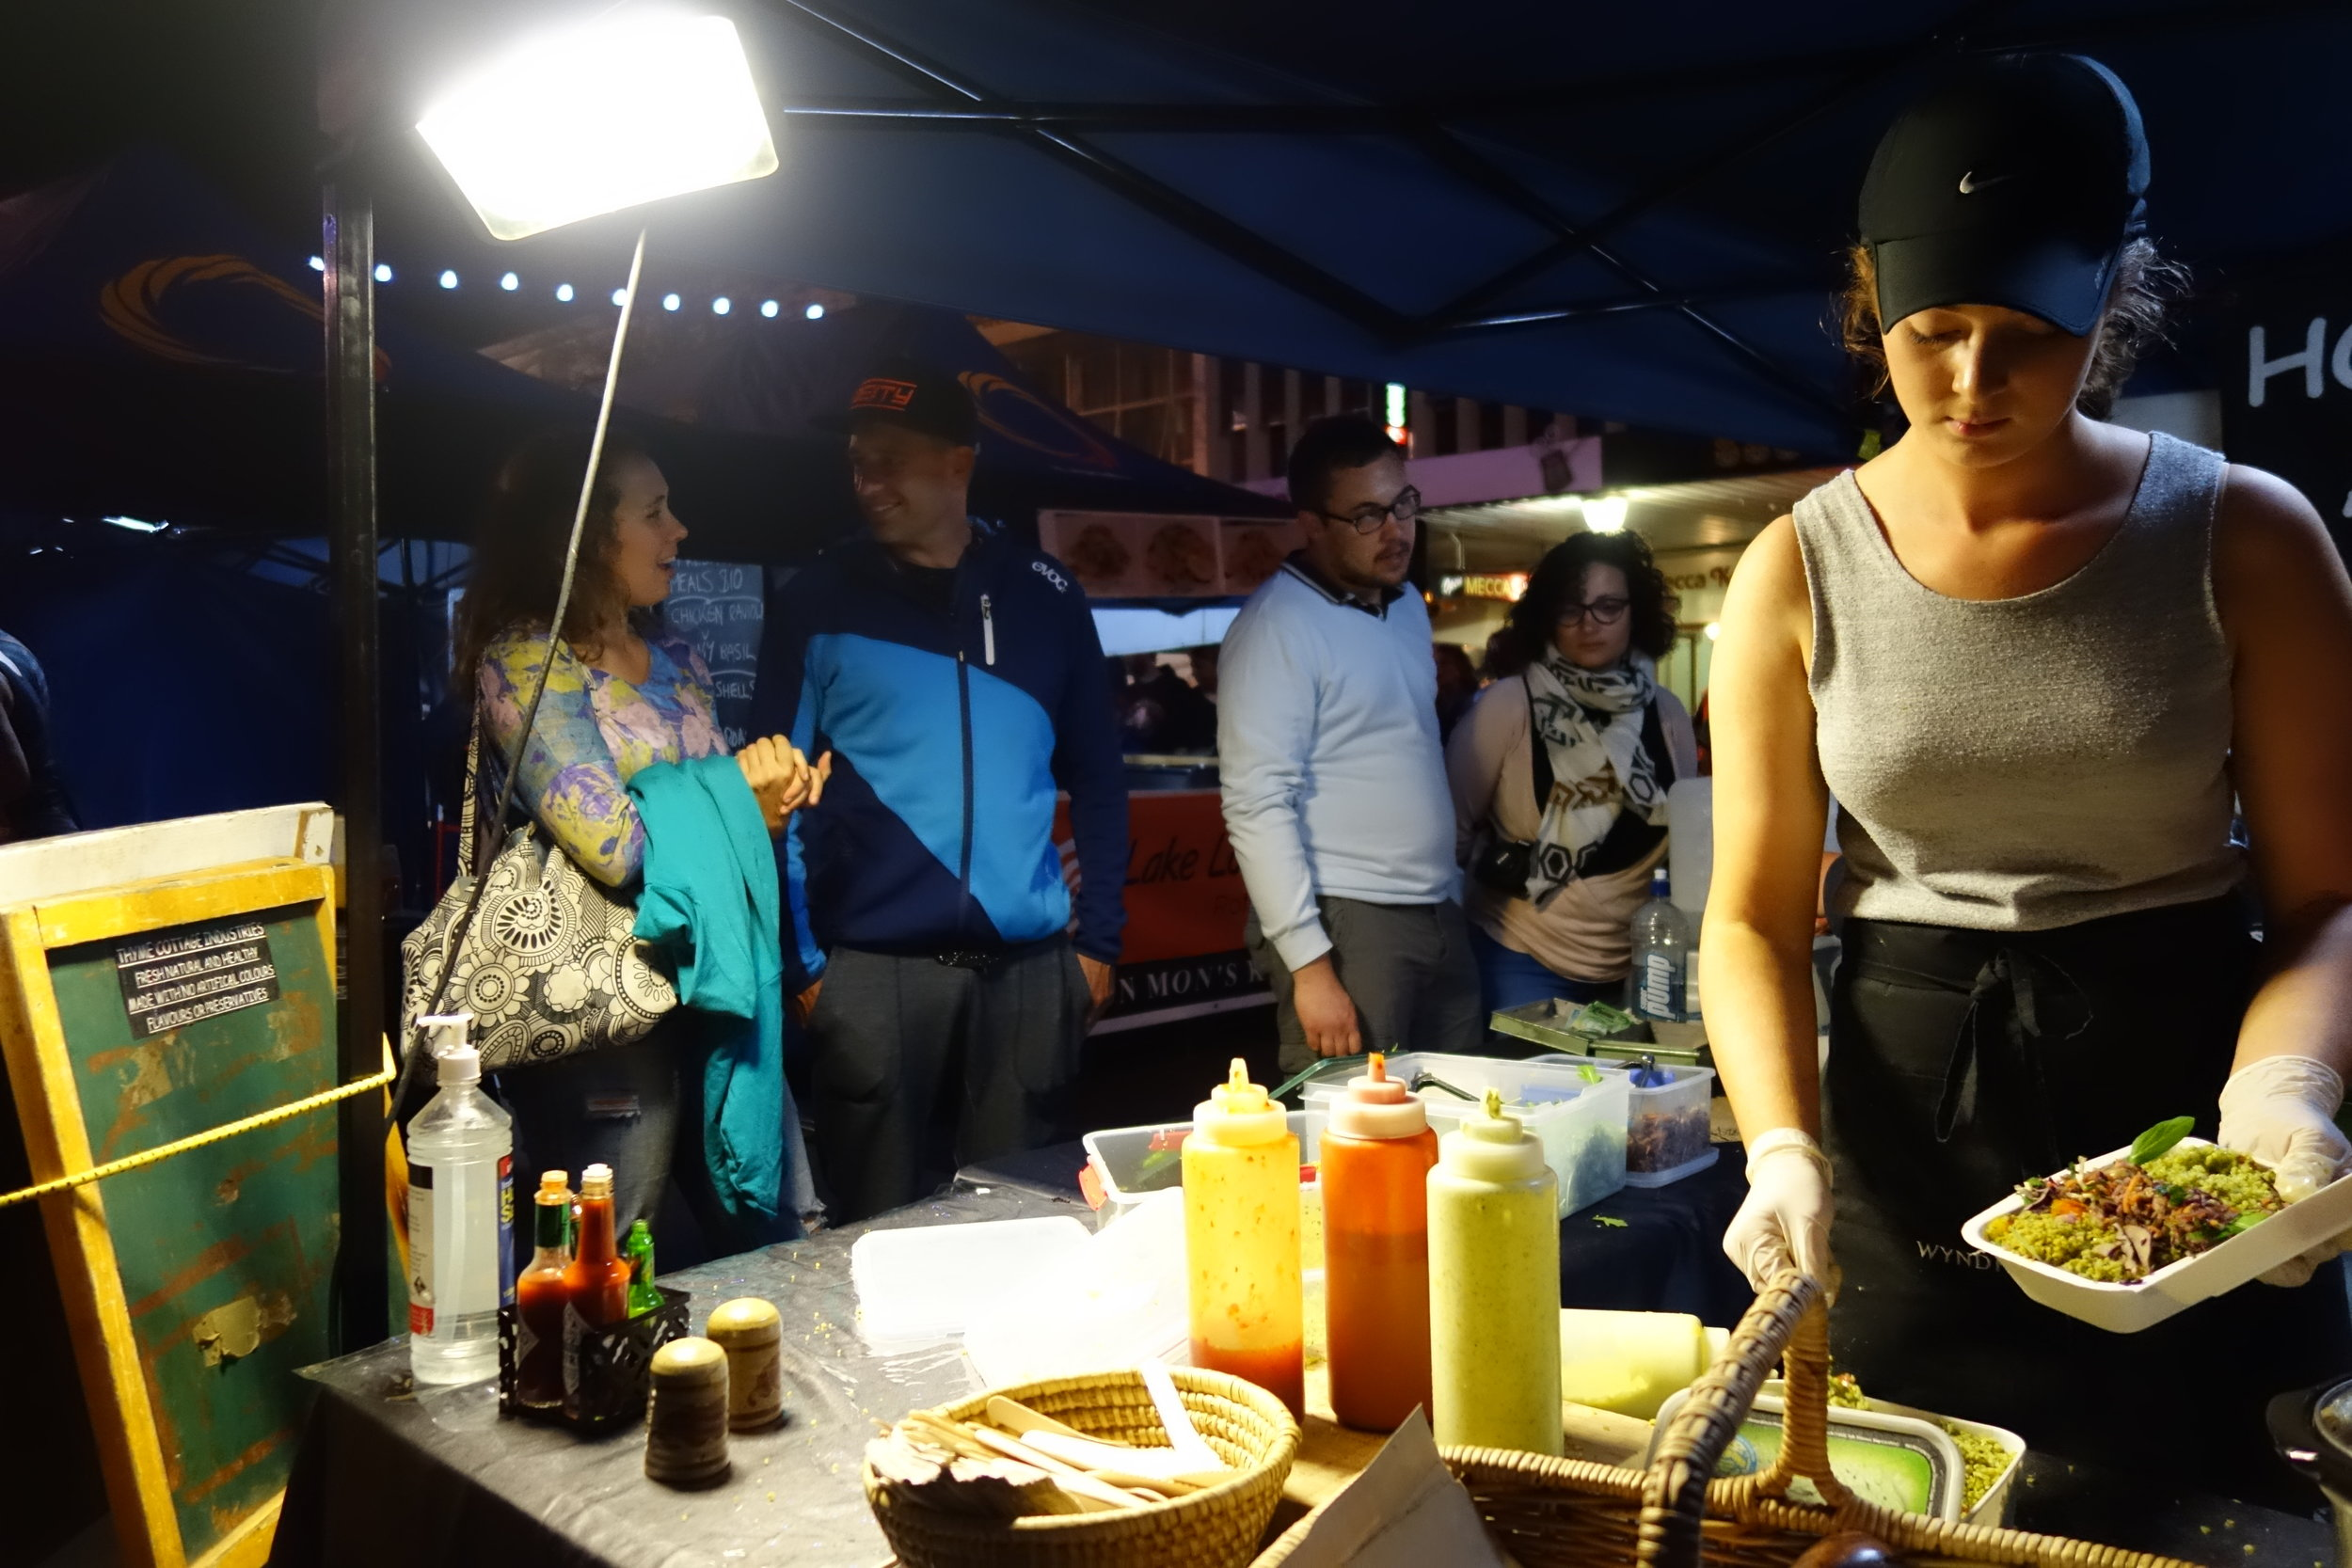 Jeff, Emma and I hit the night markets for dinner before the Deep Summer photo competition.